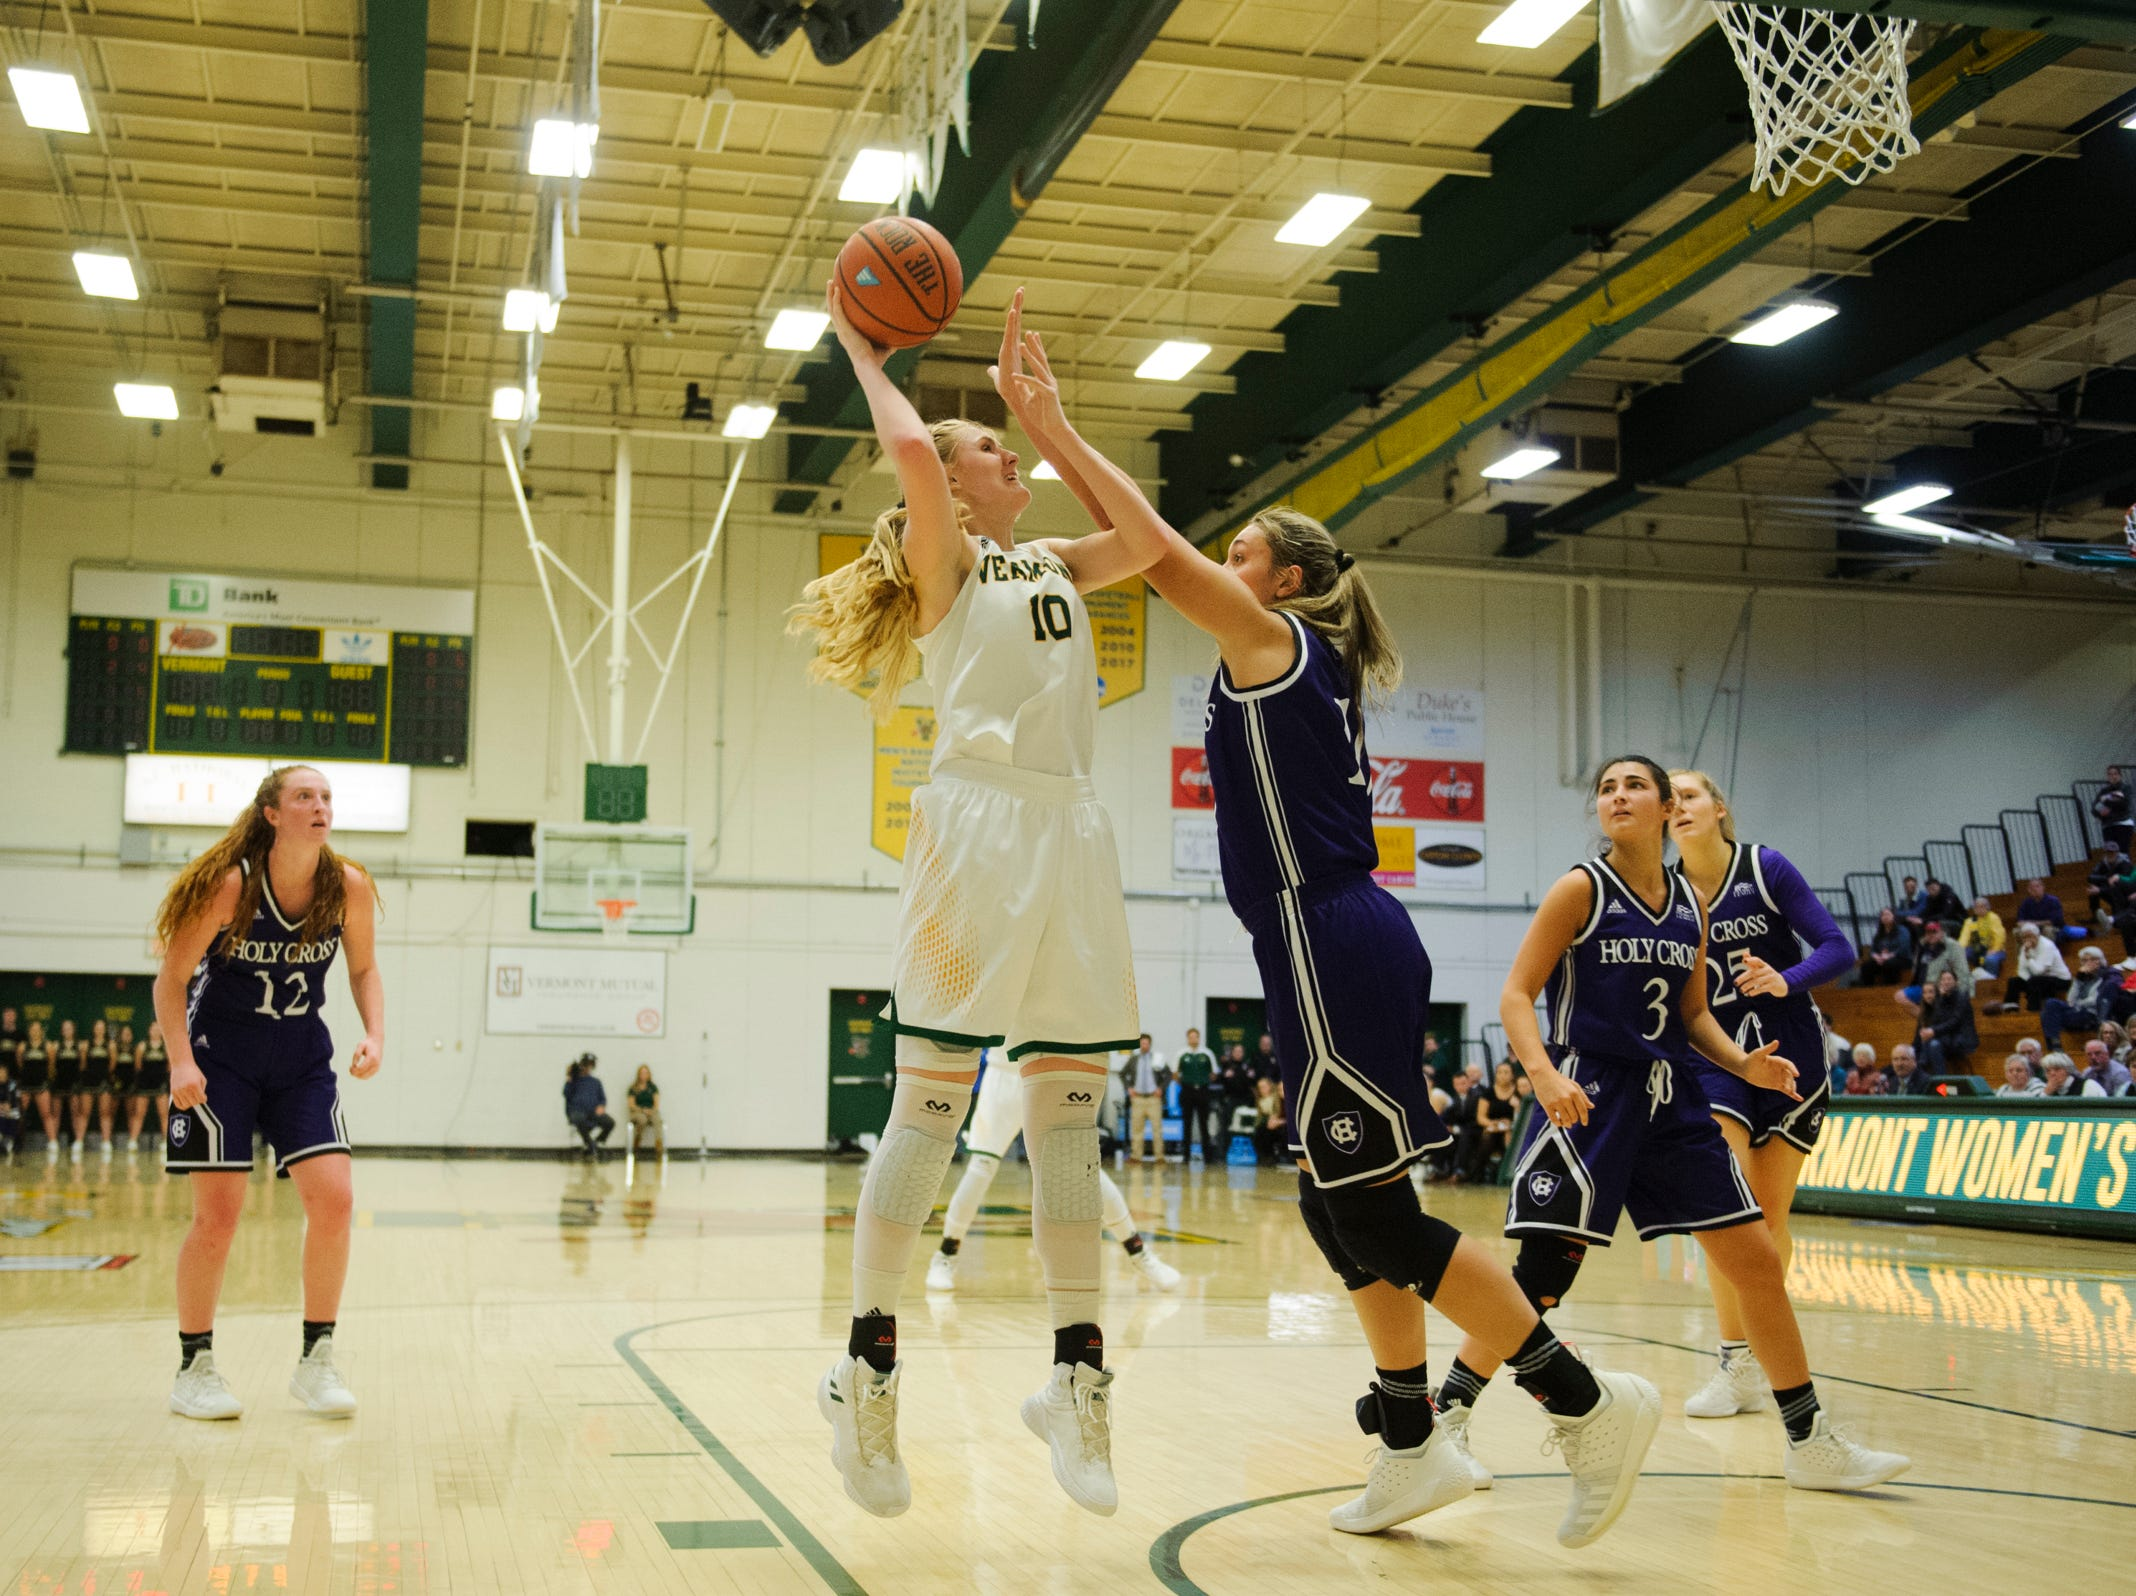 Vermont's Hannah Crymble (10) leaps to take a shot during the women's basketball game between the Holy Cross Crusaders and the Vermont Catamounts at Patrick Gym on Wednesday night November 28, 2018 in Burlington.